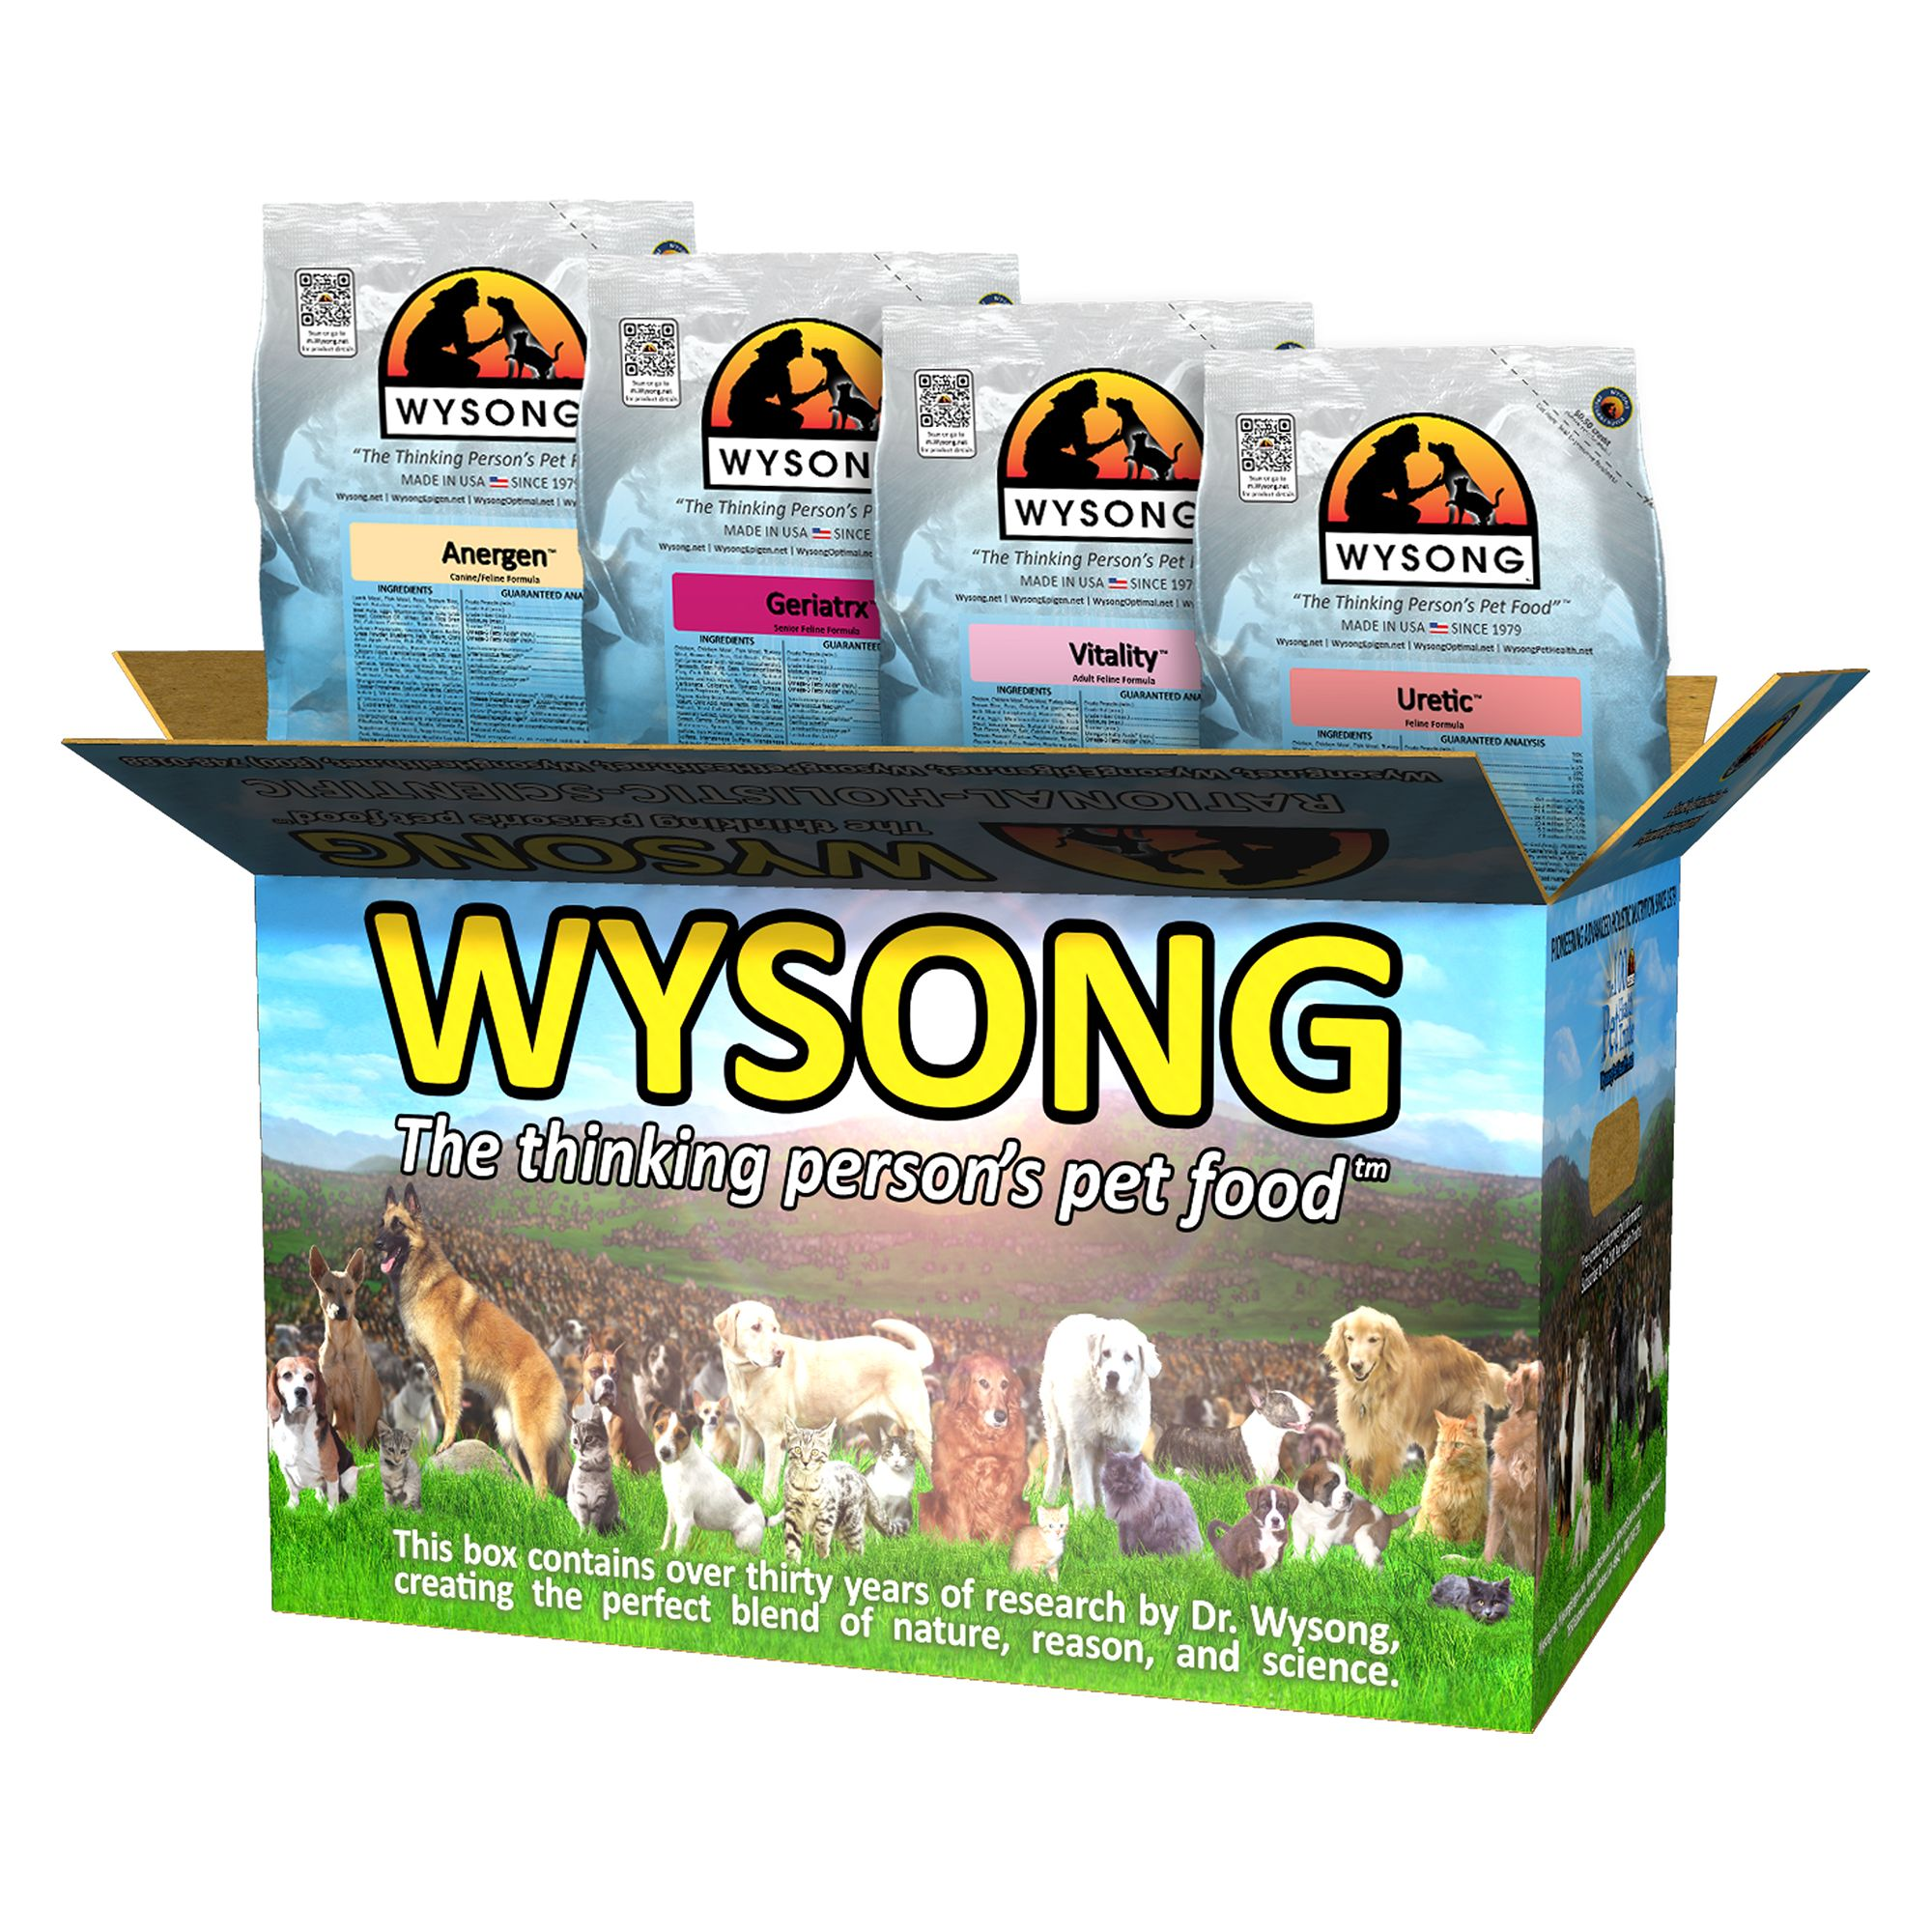 Wysong Variety Pack Cat Food - Anergen, Geriatrx, Vitality and Uretic size: 20 Lb, Rabbit, Kibble 5270520